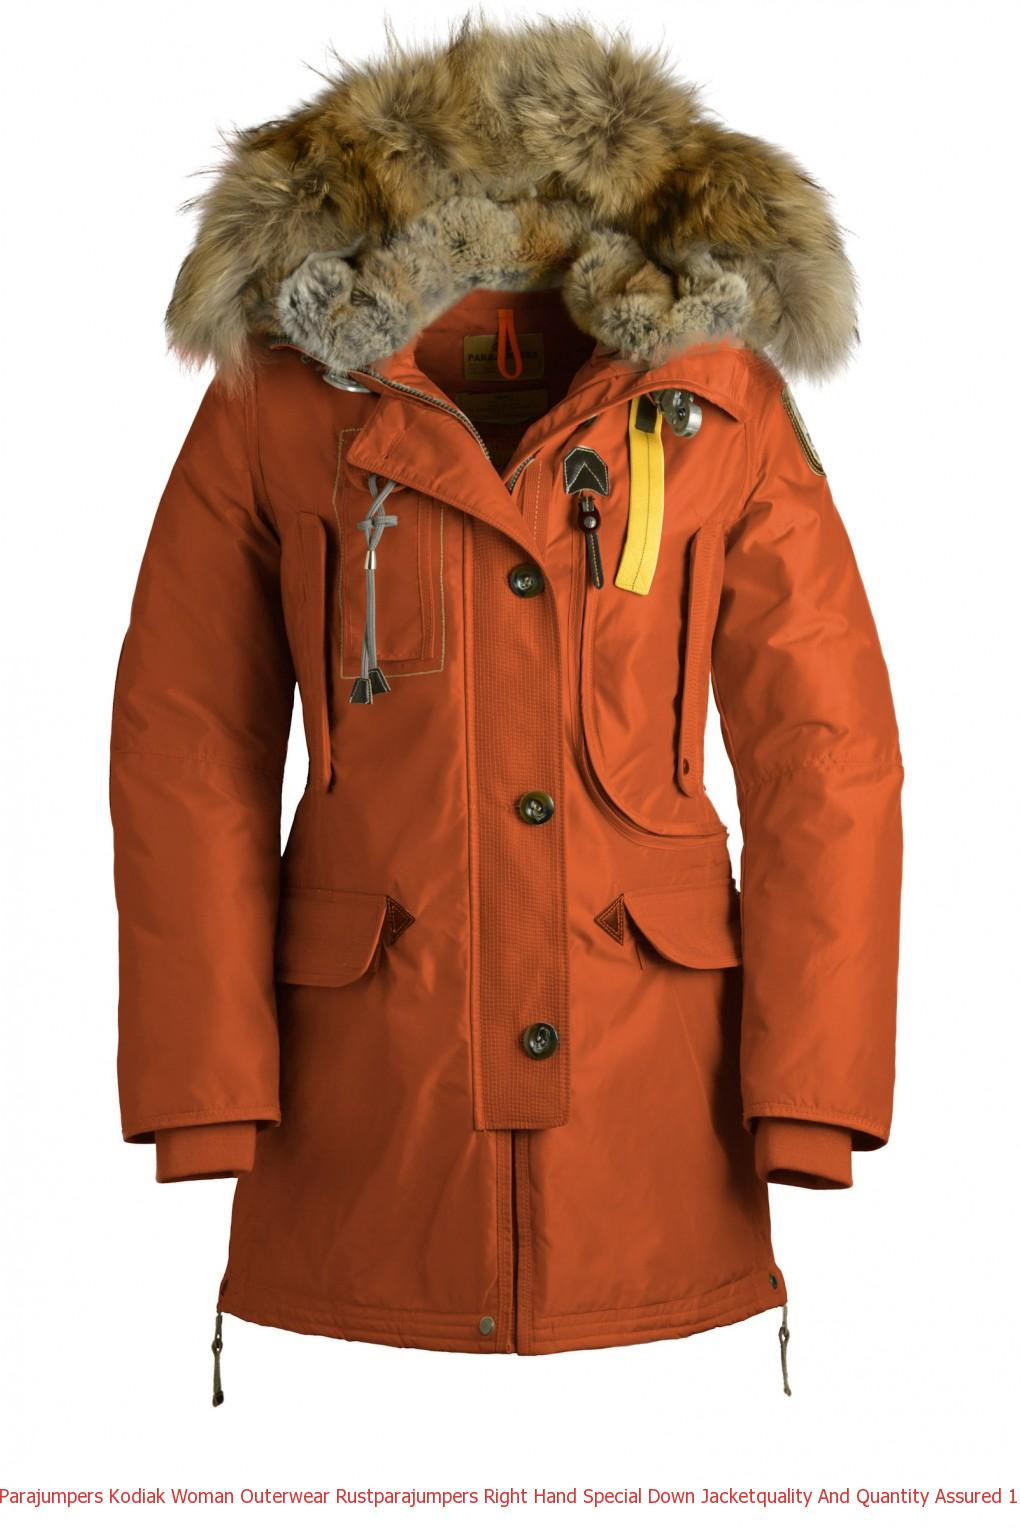 Parajumpers Kodiak Woman Outerwear Rustparajumpers Right Hand Special Down Jacketquality And Quantity Assured 1359